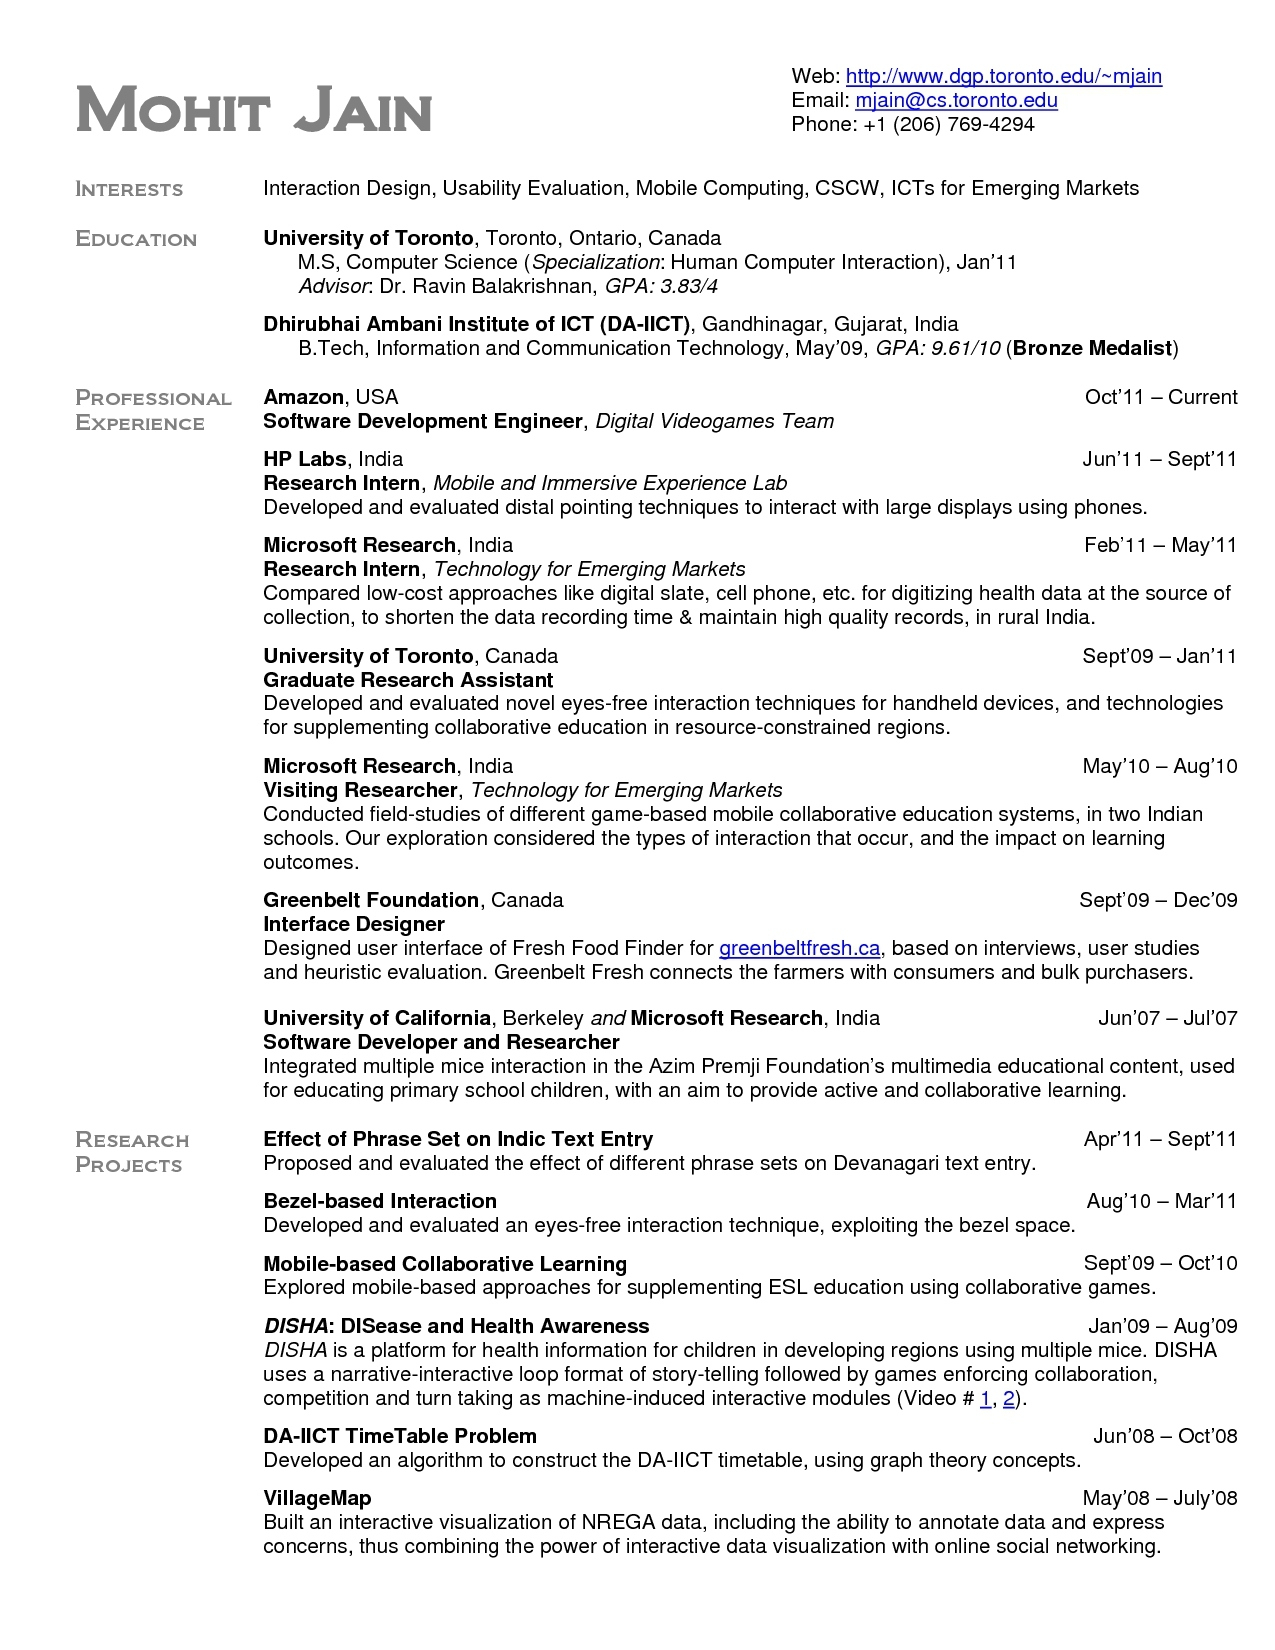 Textedit Resume Template - Resume Fancy Template Wanted Tex Latex Stack Exchange Templates